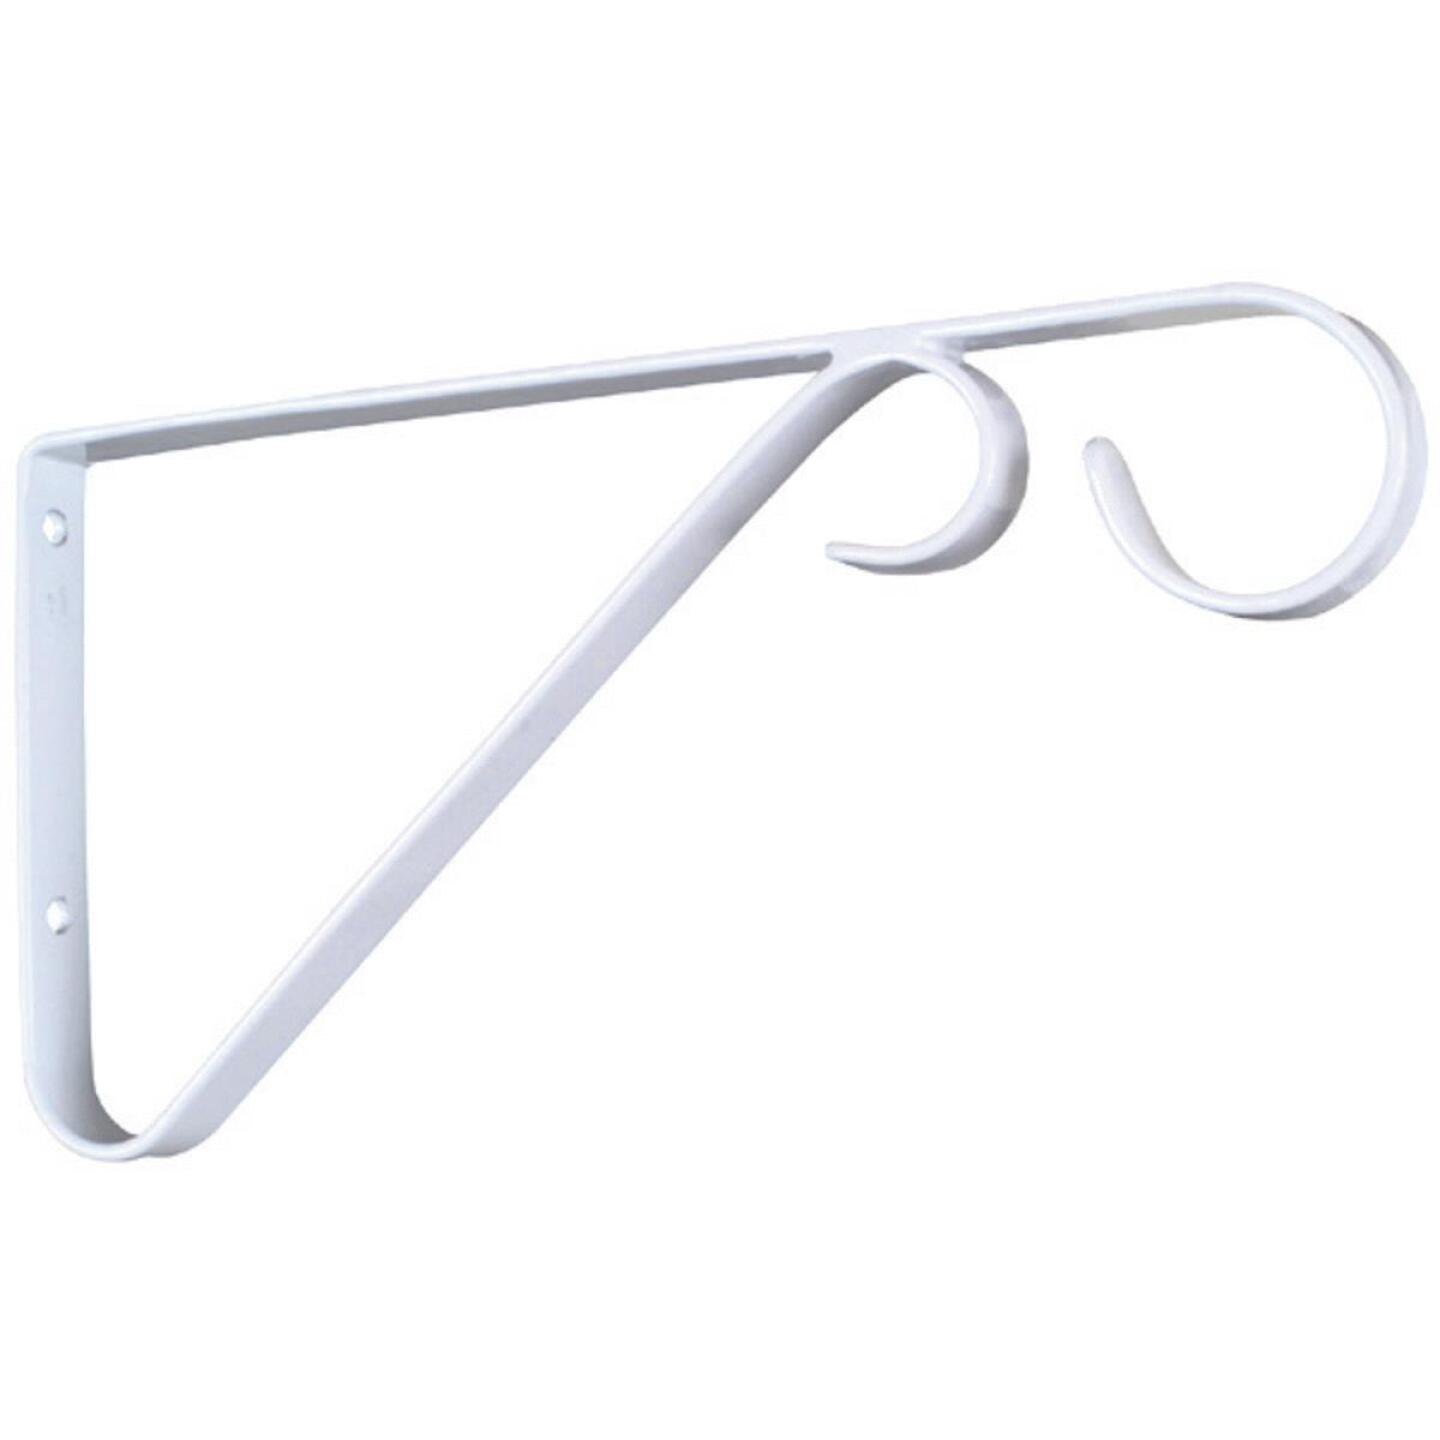 National 9 In. White Steel Hanging Plant Bracket Image 4